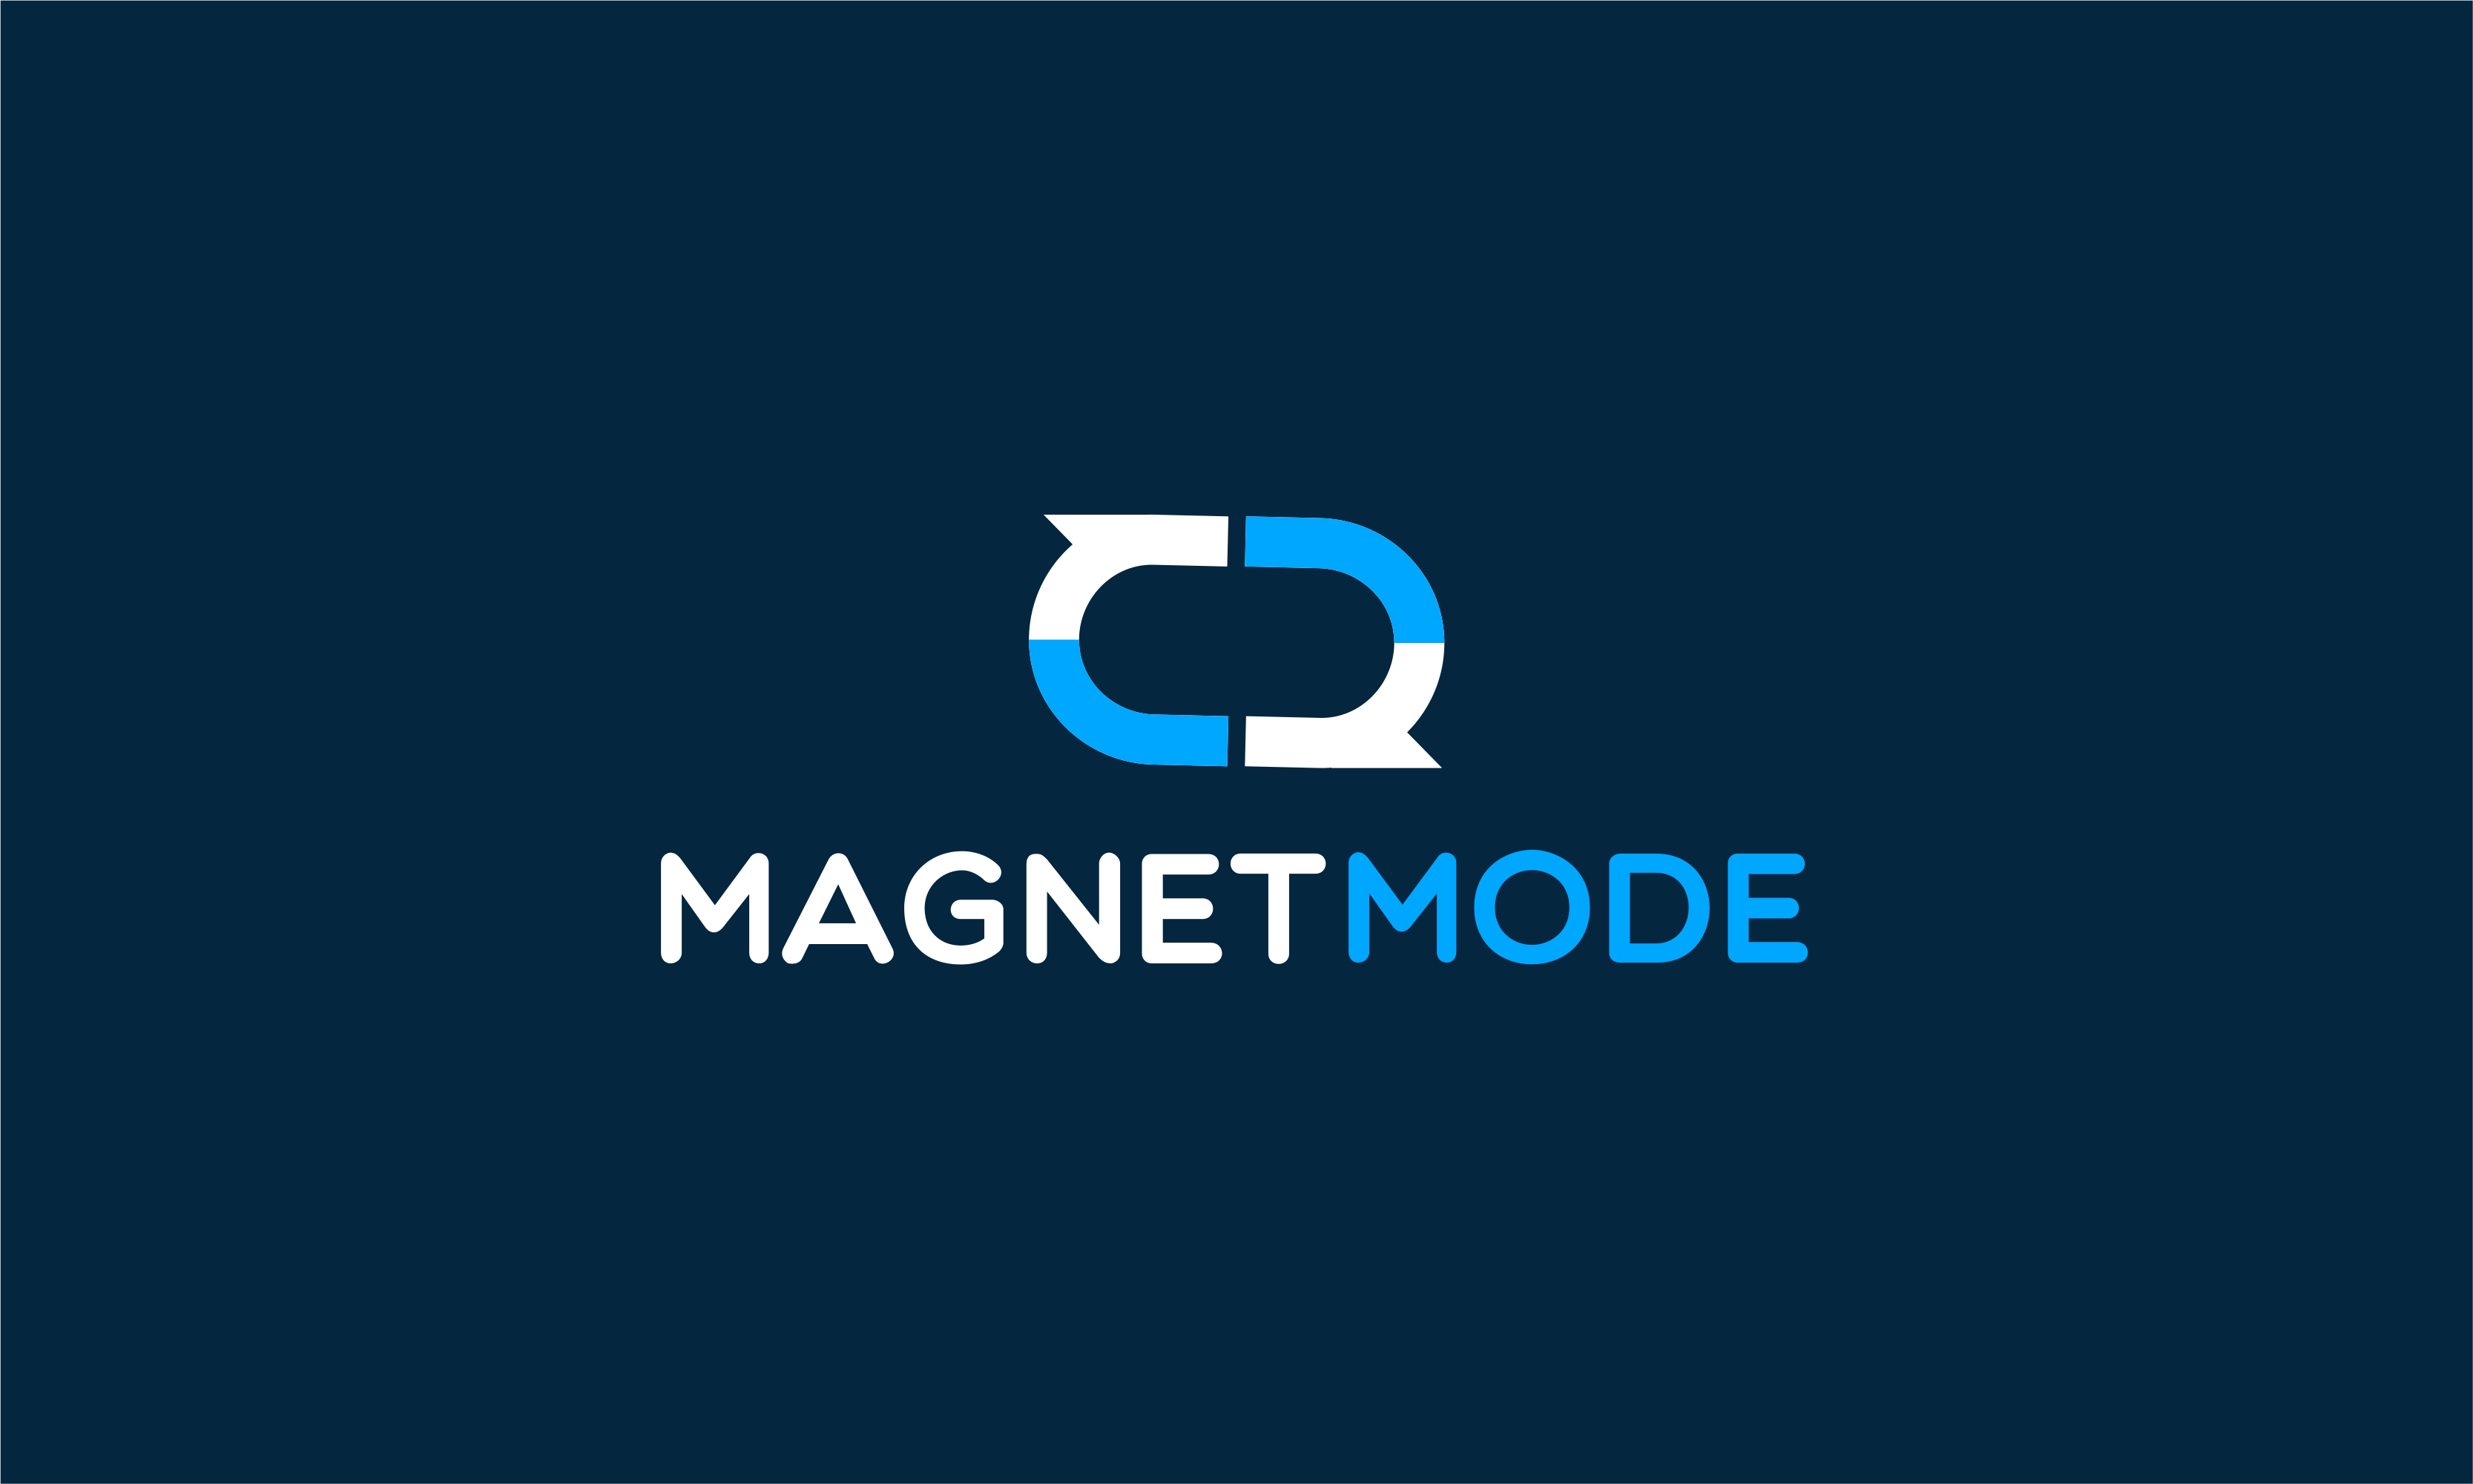 Magnetmode